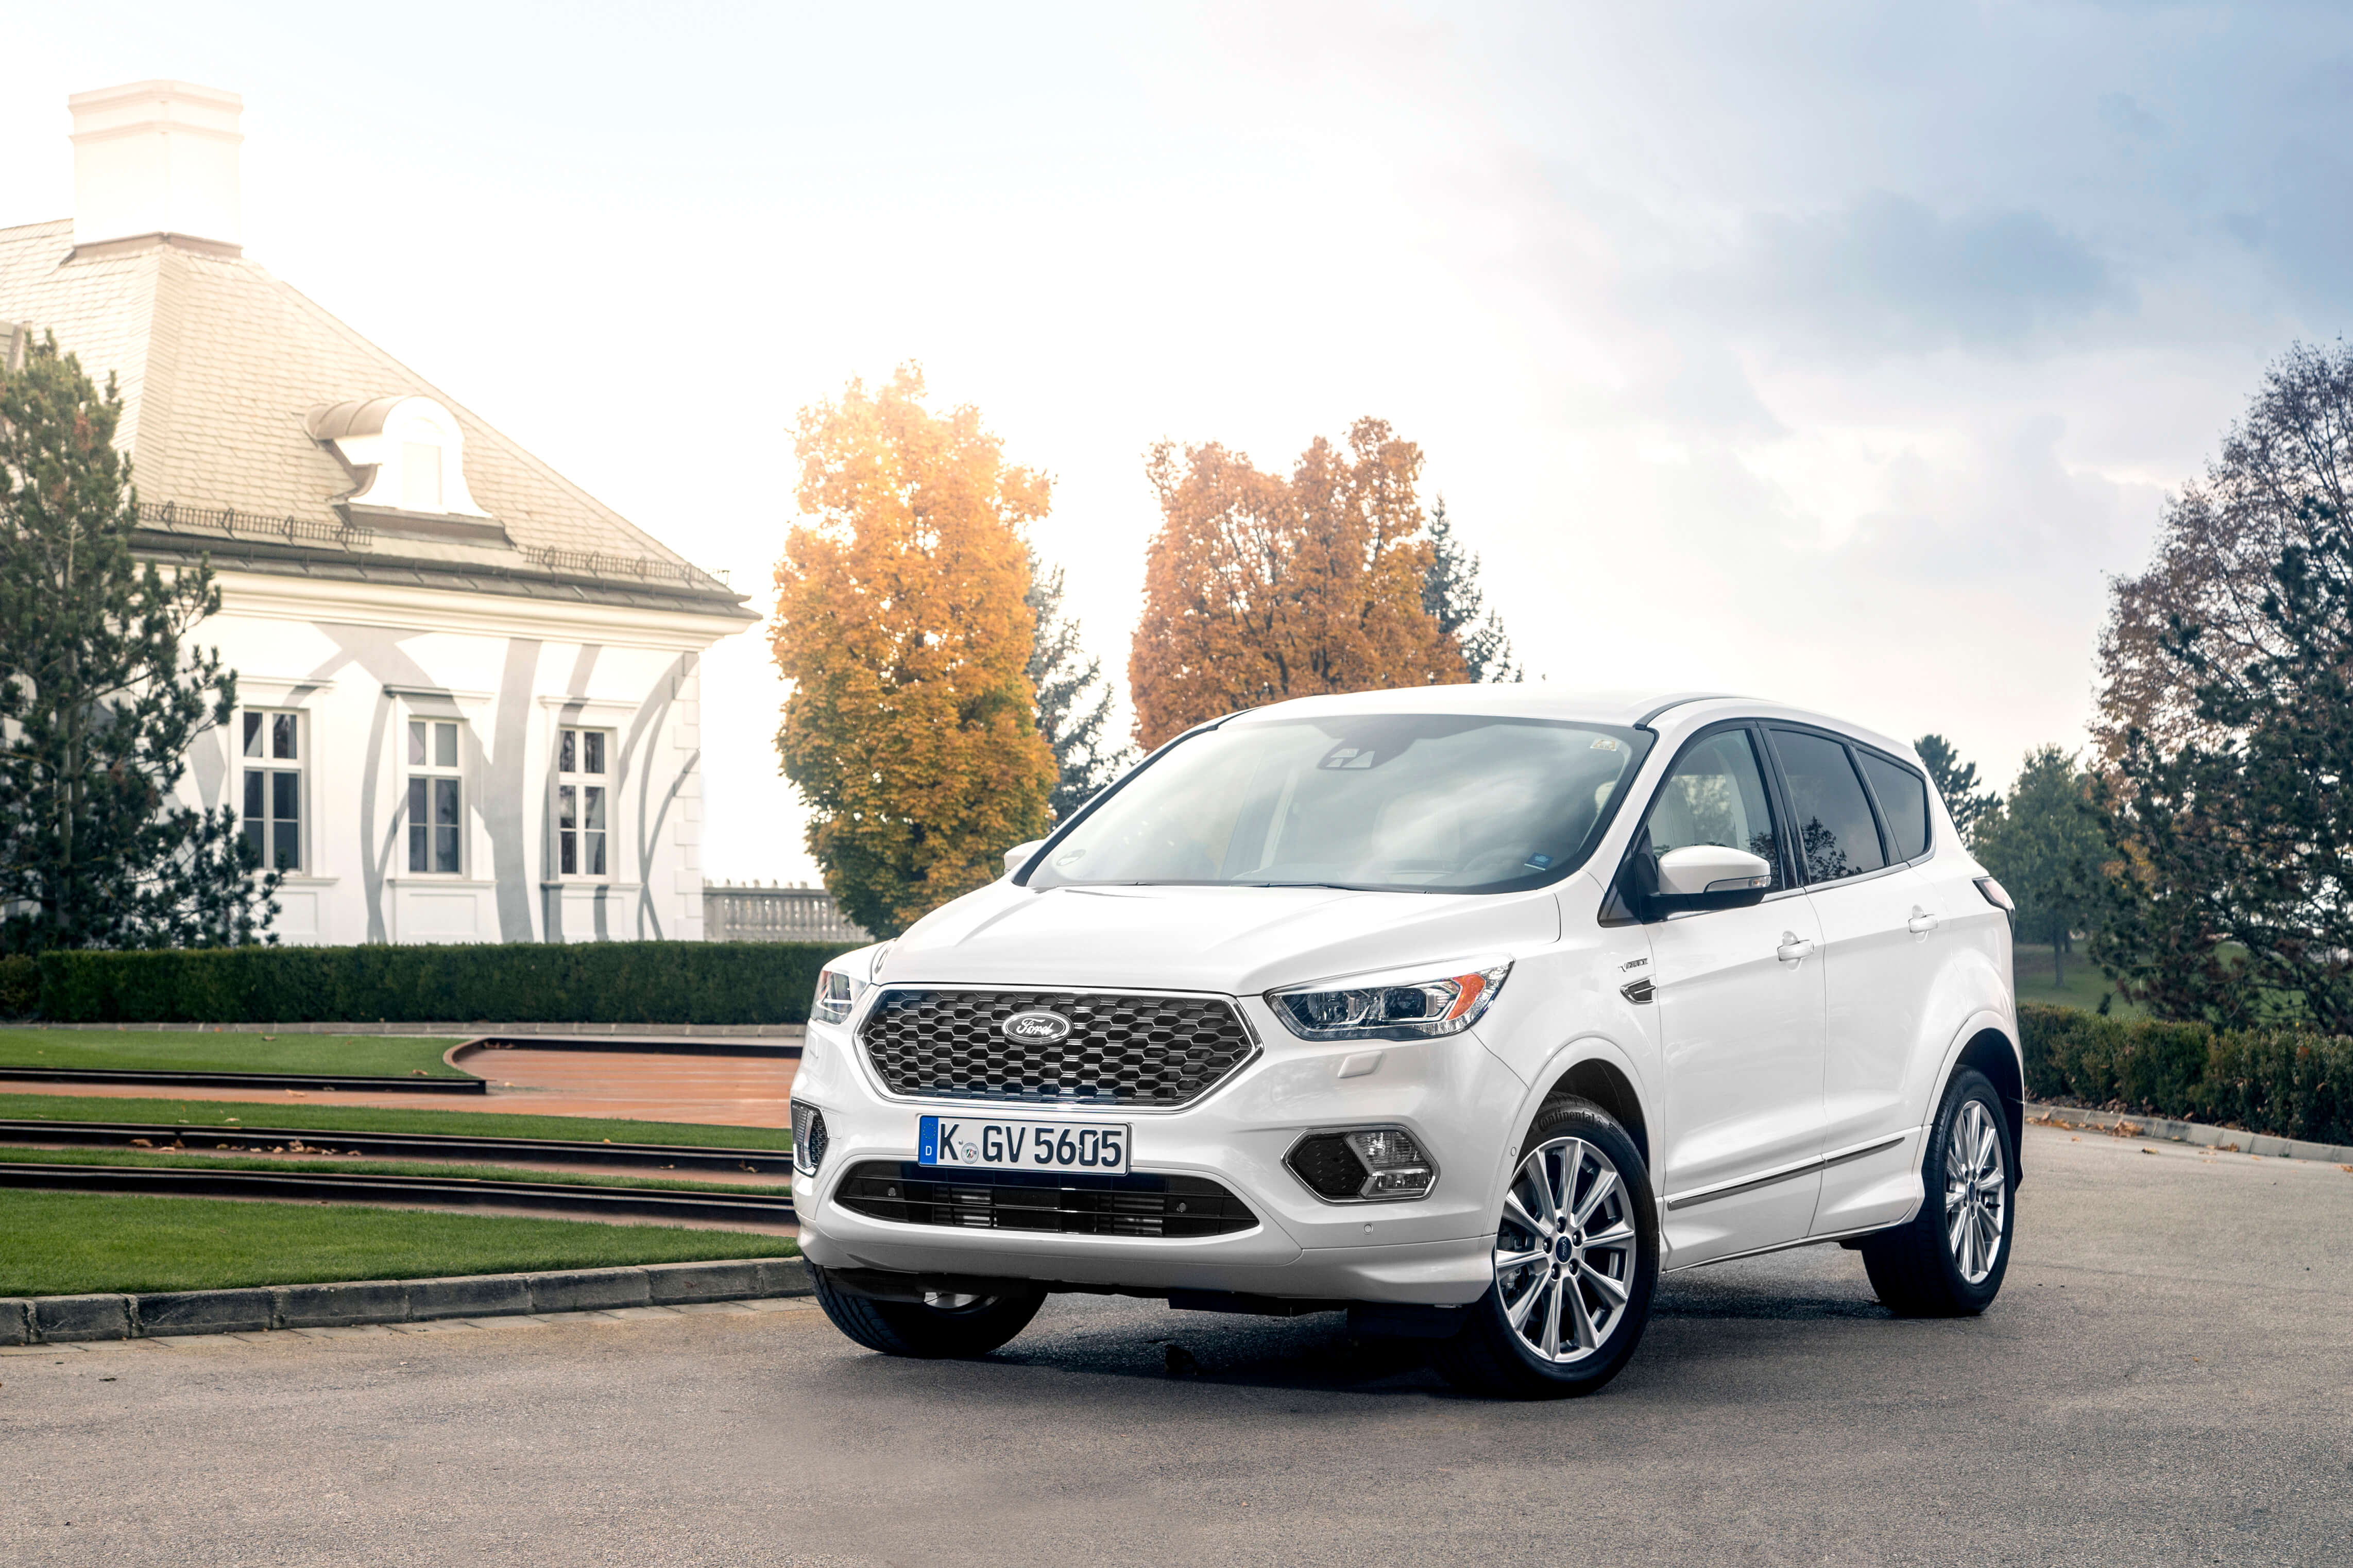 Ford Kuga 2.0 EcoBoost 4x4 Vignale